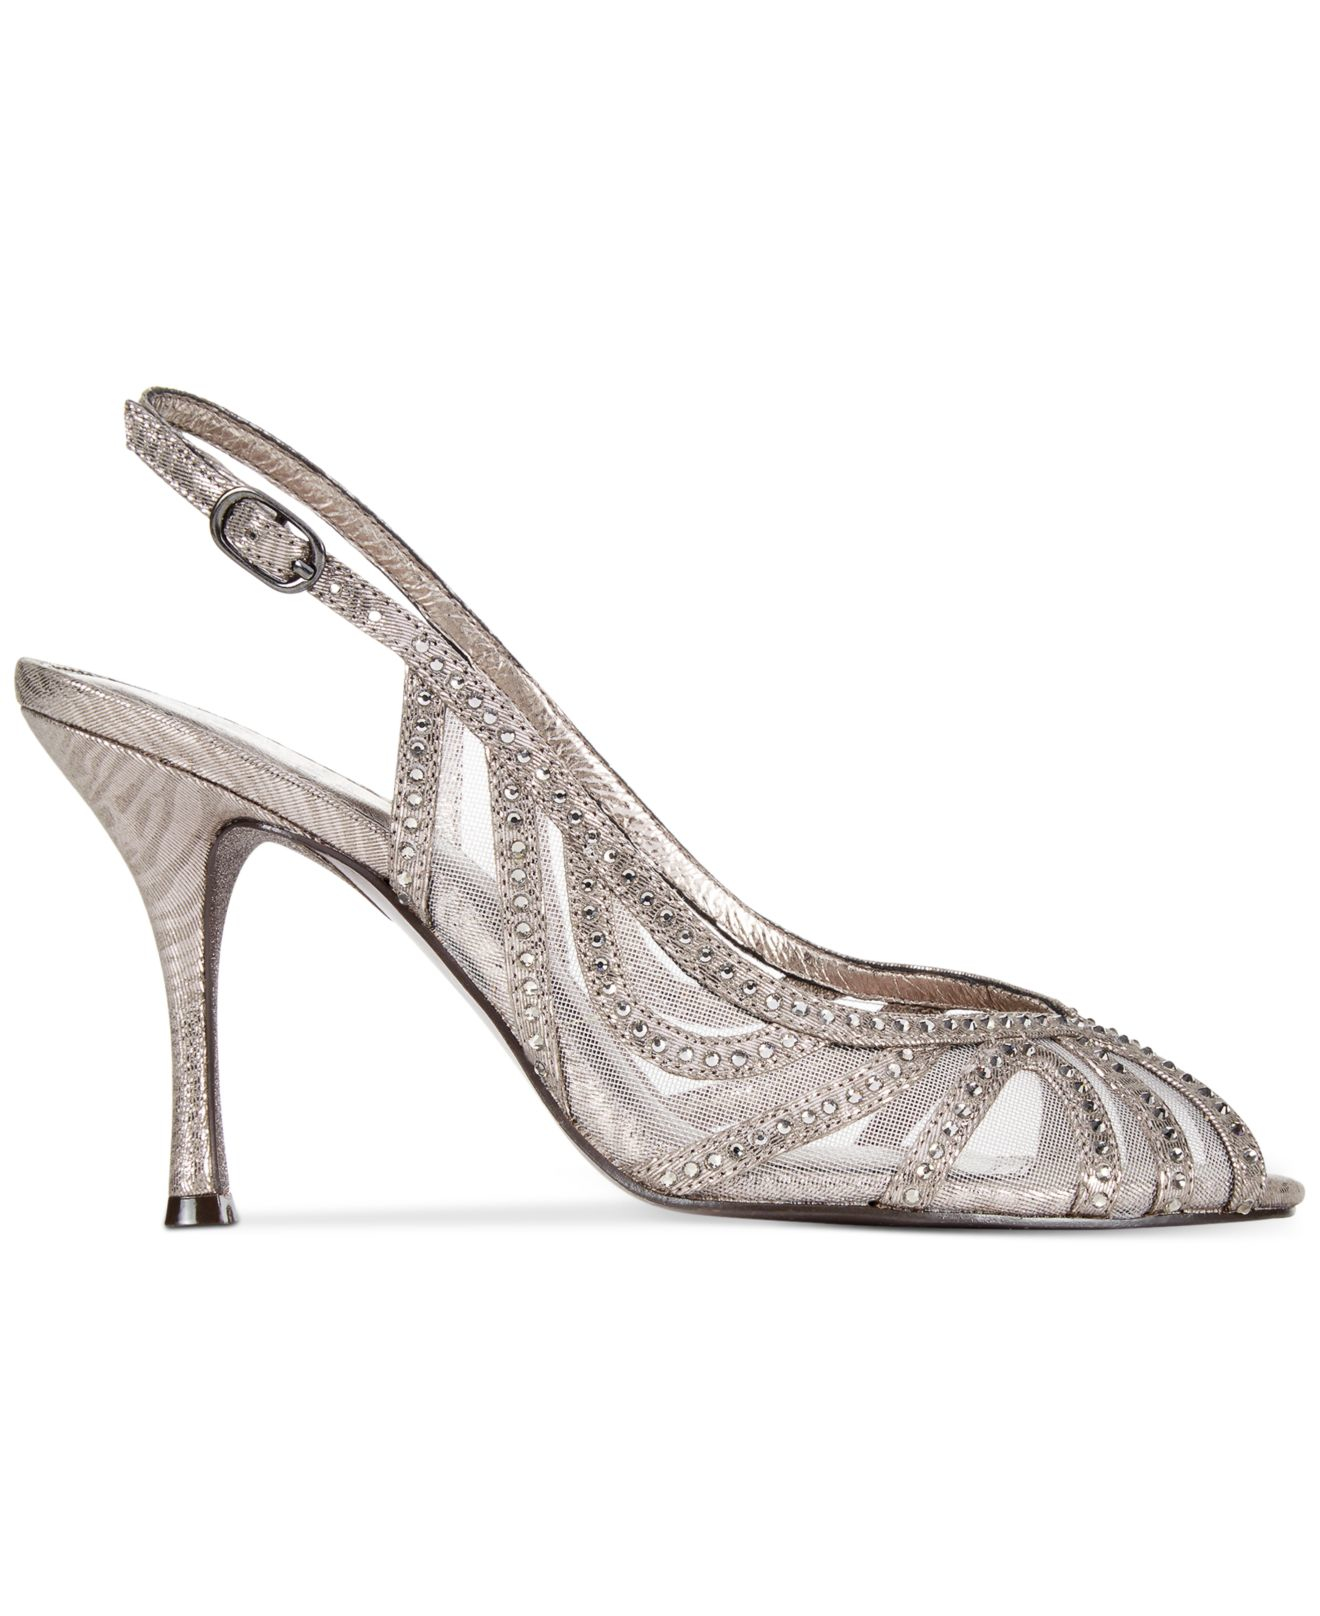 Lyst Adrianna Papell Fiji Evening Sandals In Metallic